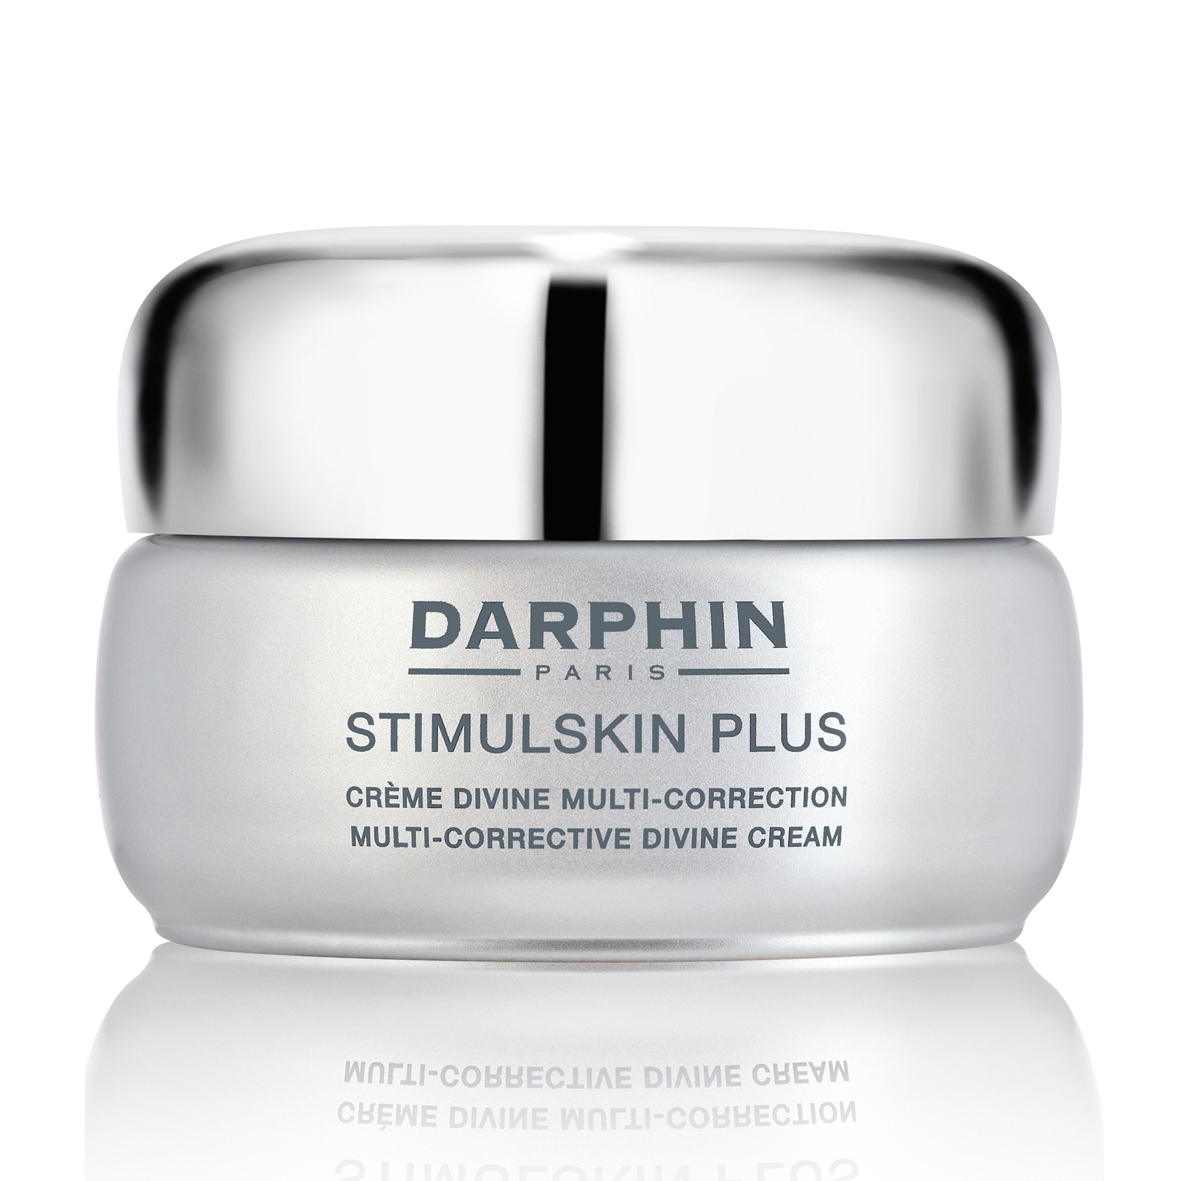 Stimulskin Plus Multi-Corrective Divine Cream for Normal Skin